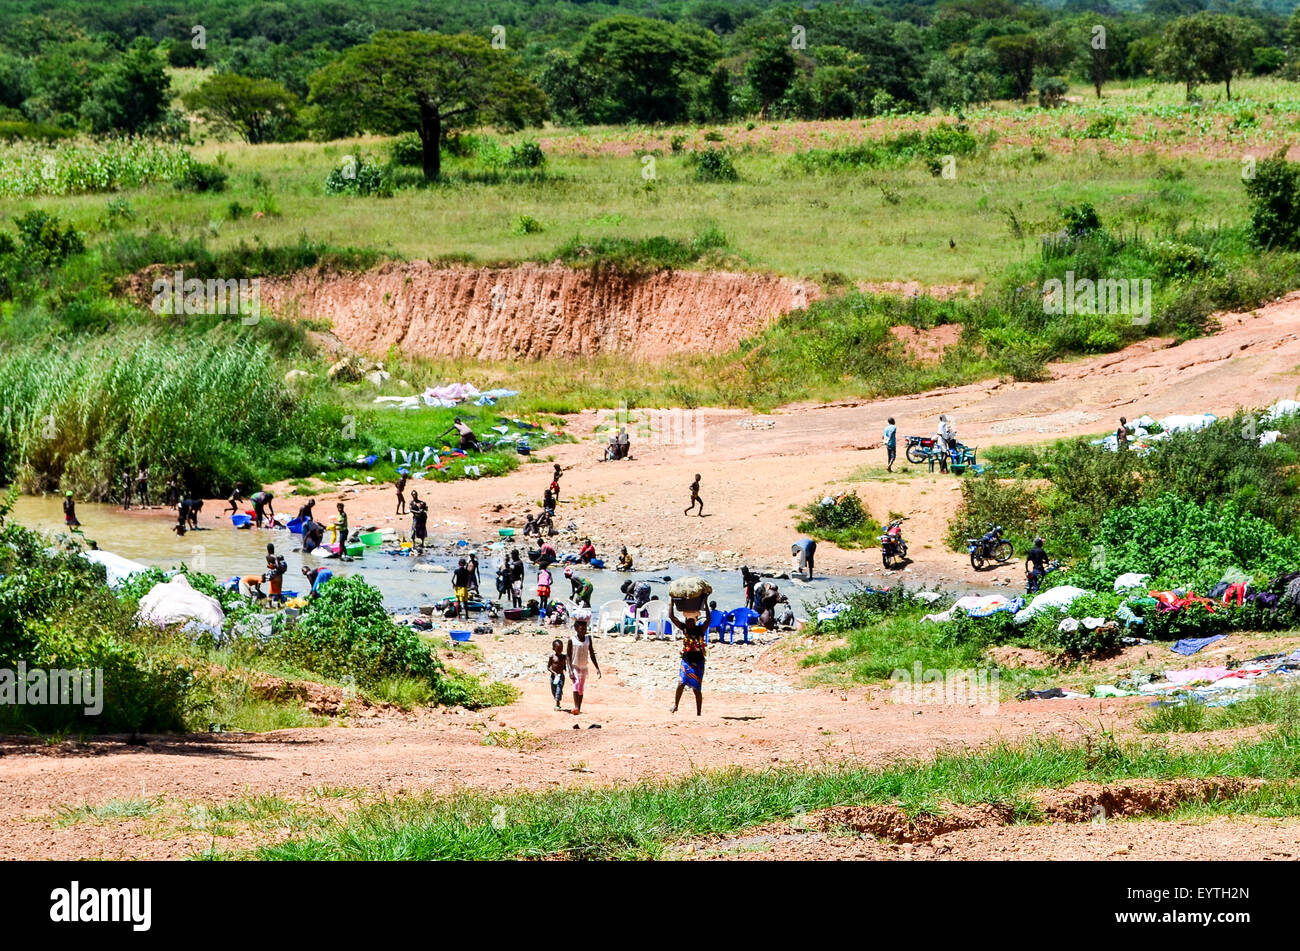 Laundry at the river in Angola - Stock Image